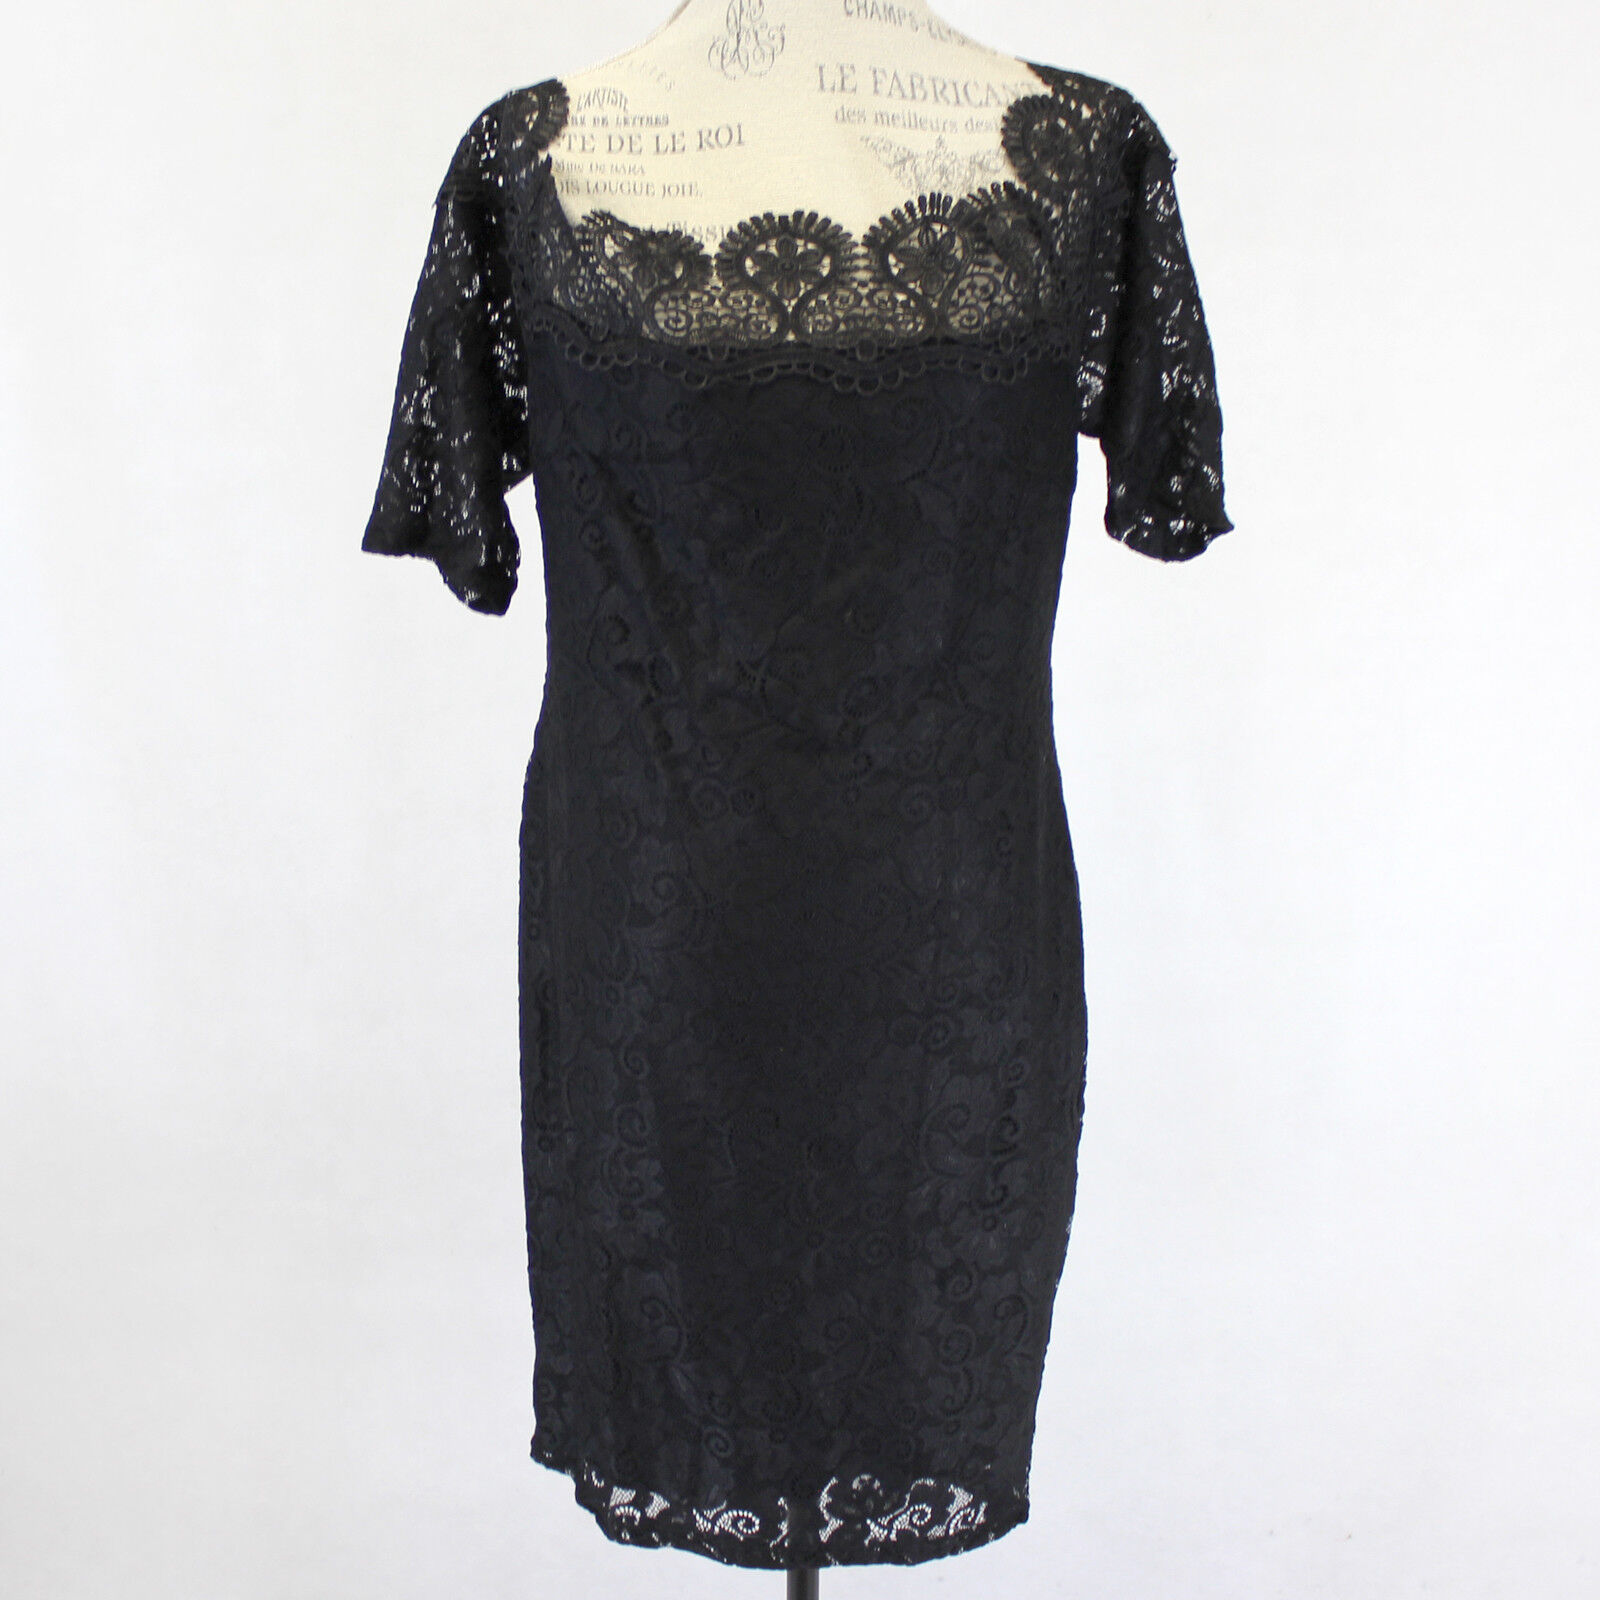 Lilian Woman Lined Lace Knit Stretch Sheath Little schwarz Dress 3X, 3XL